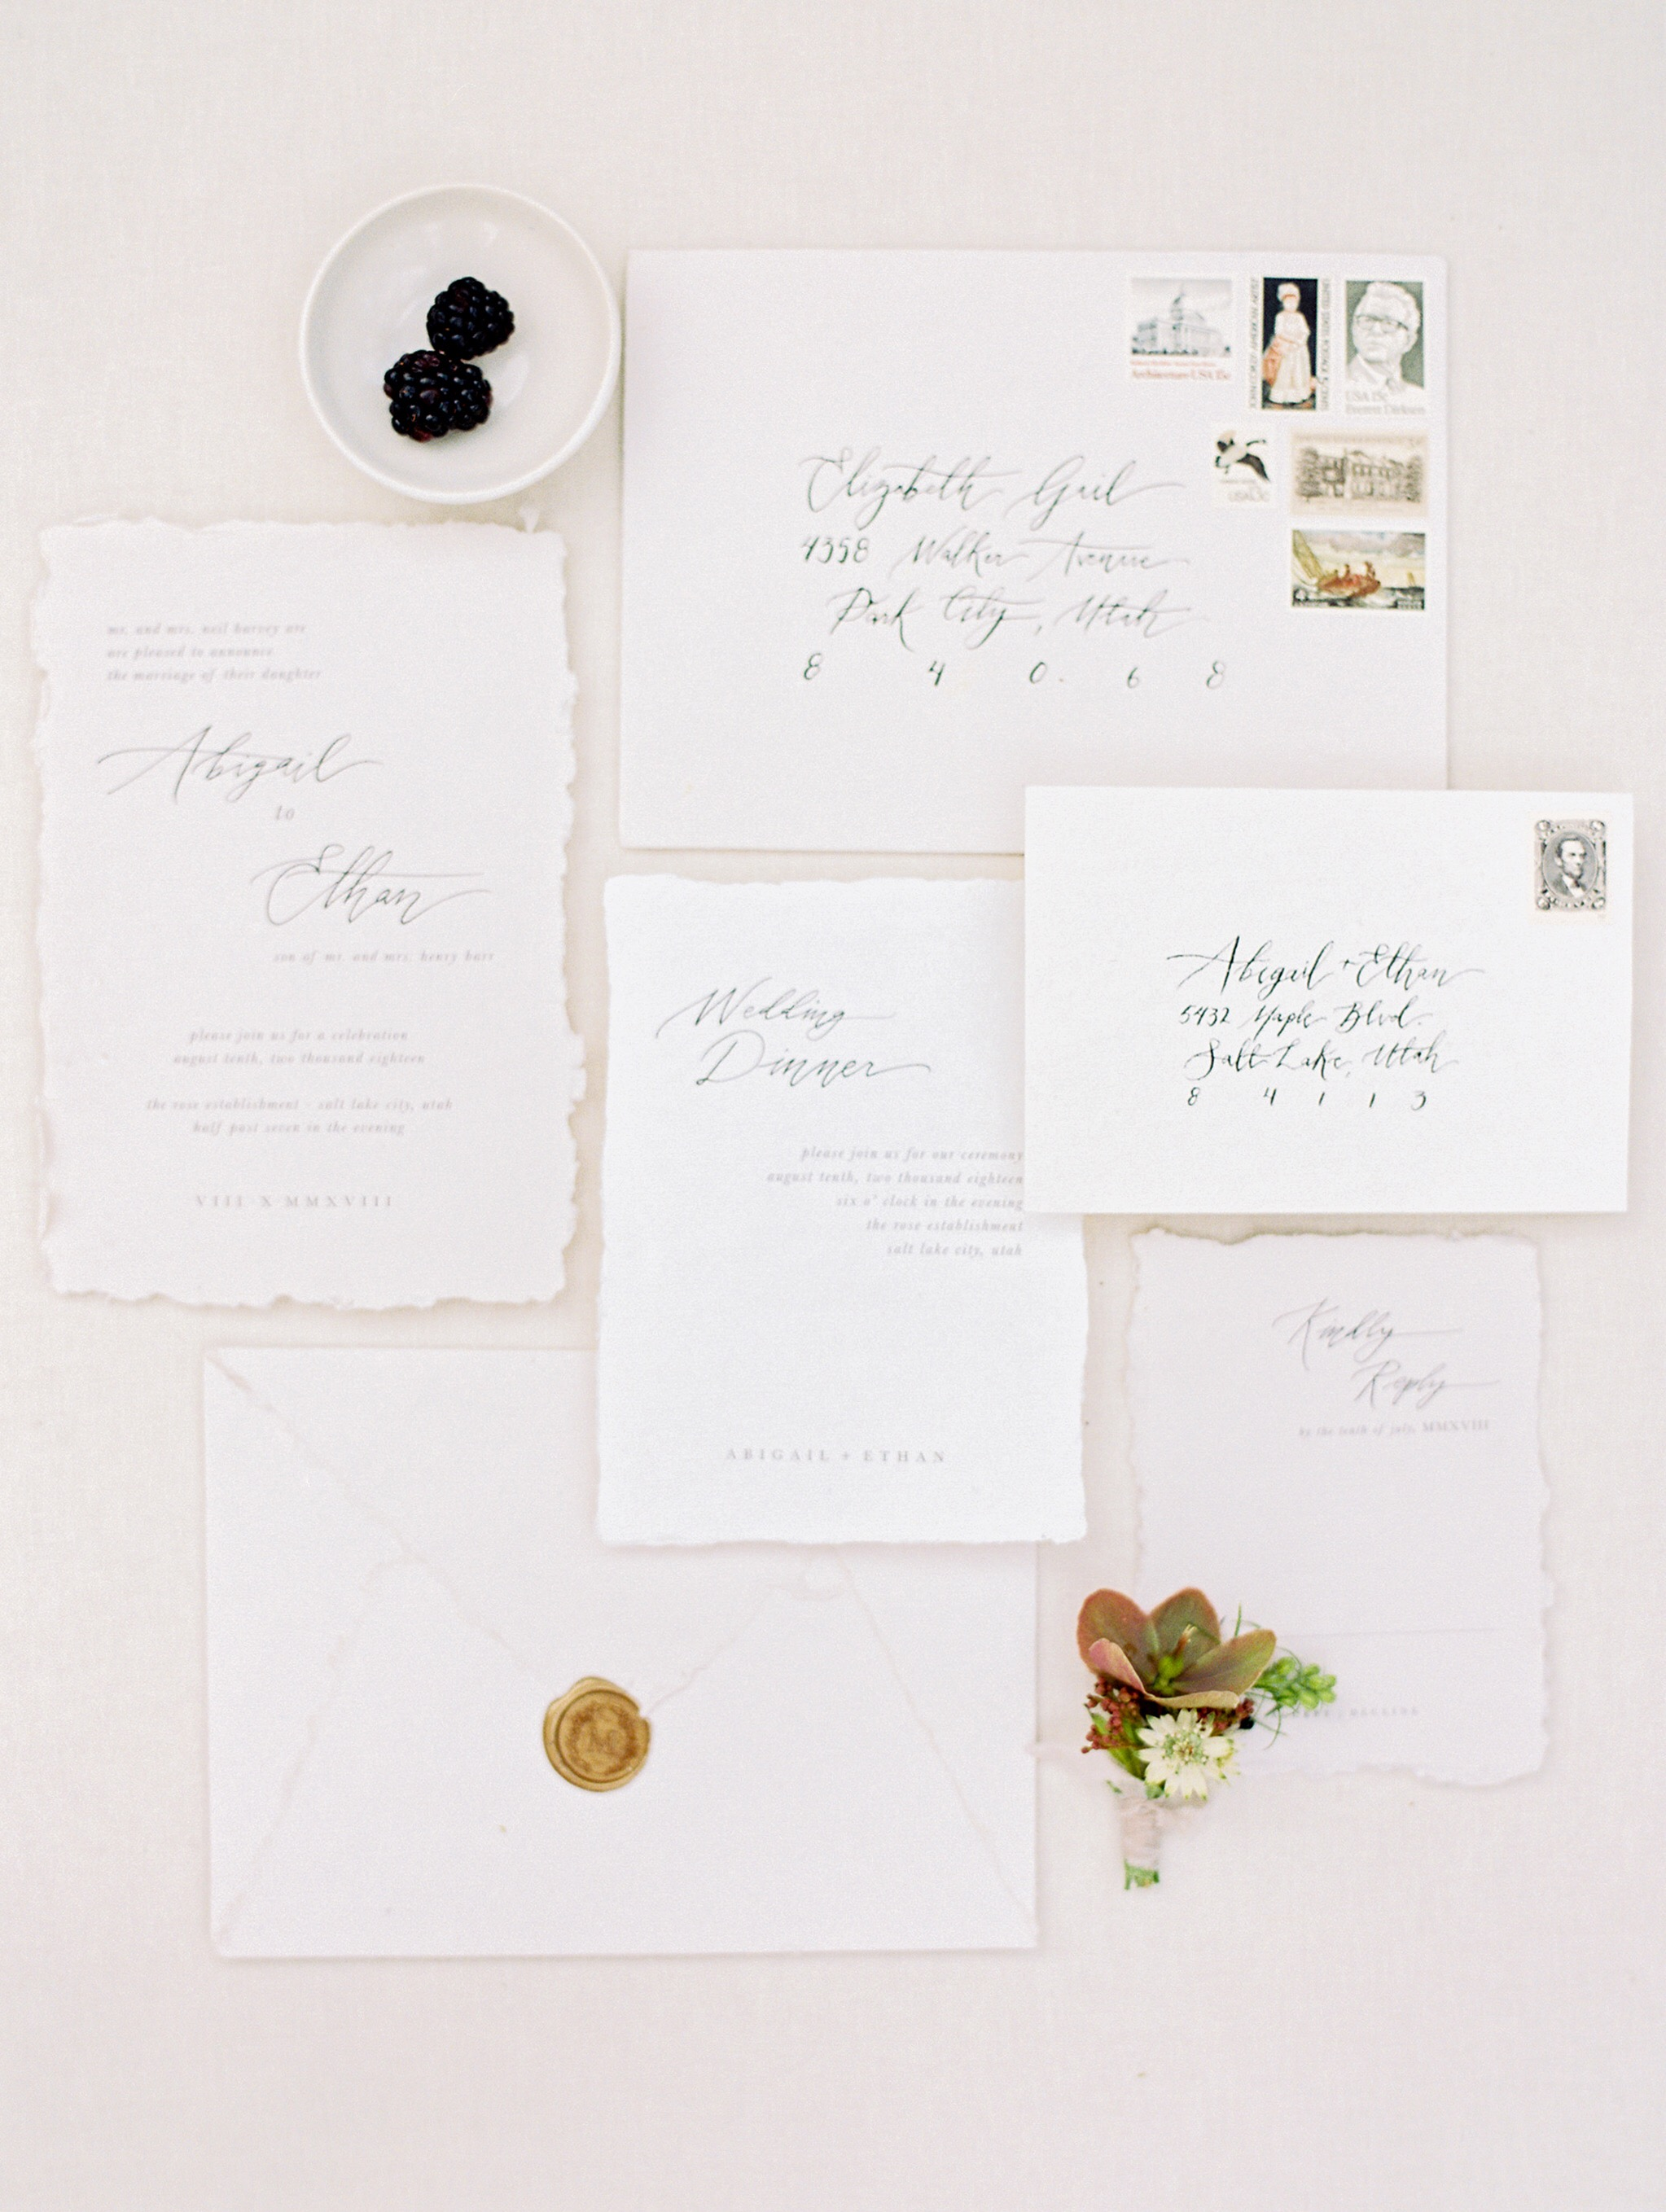 all white vintage invite with black calligraphy